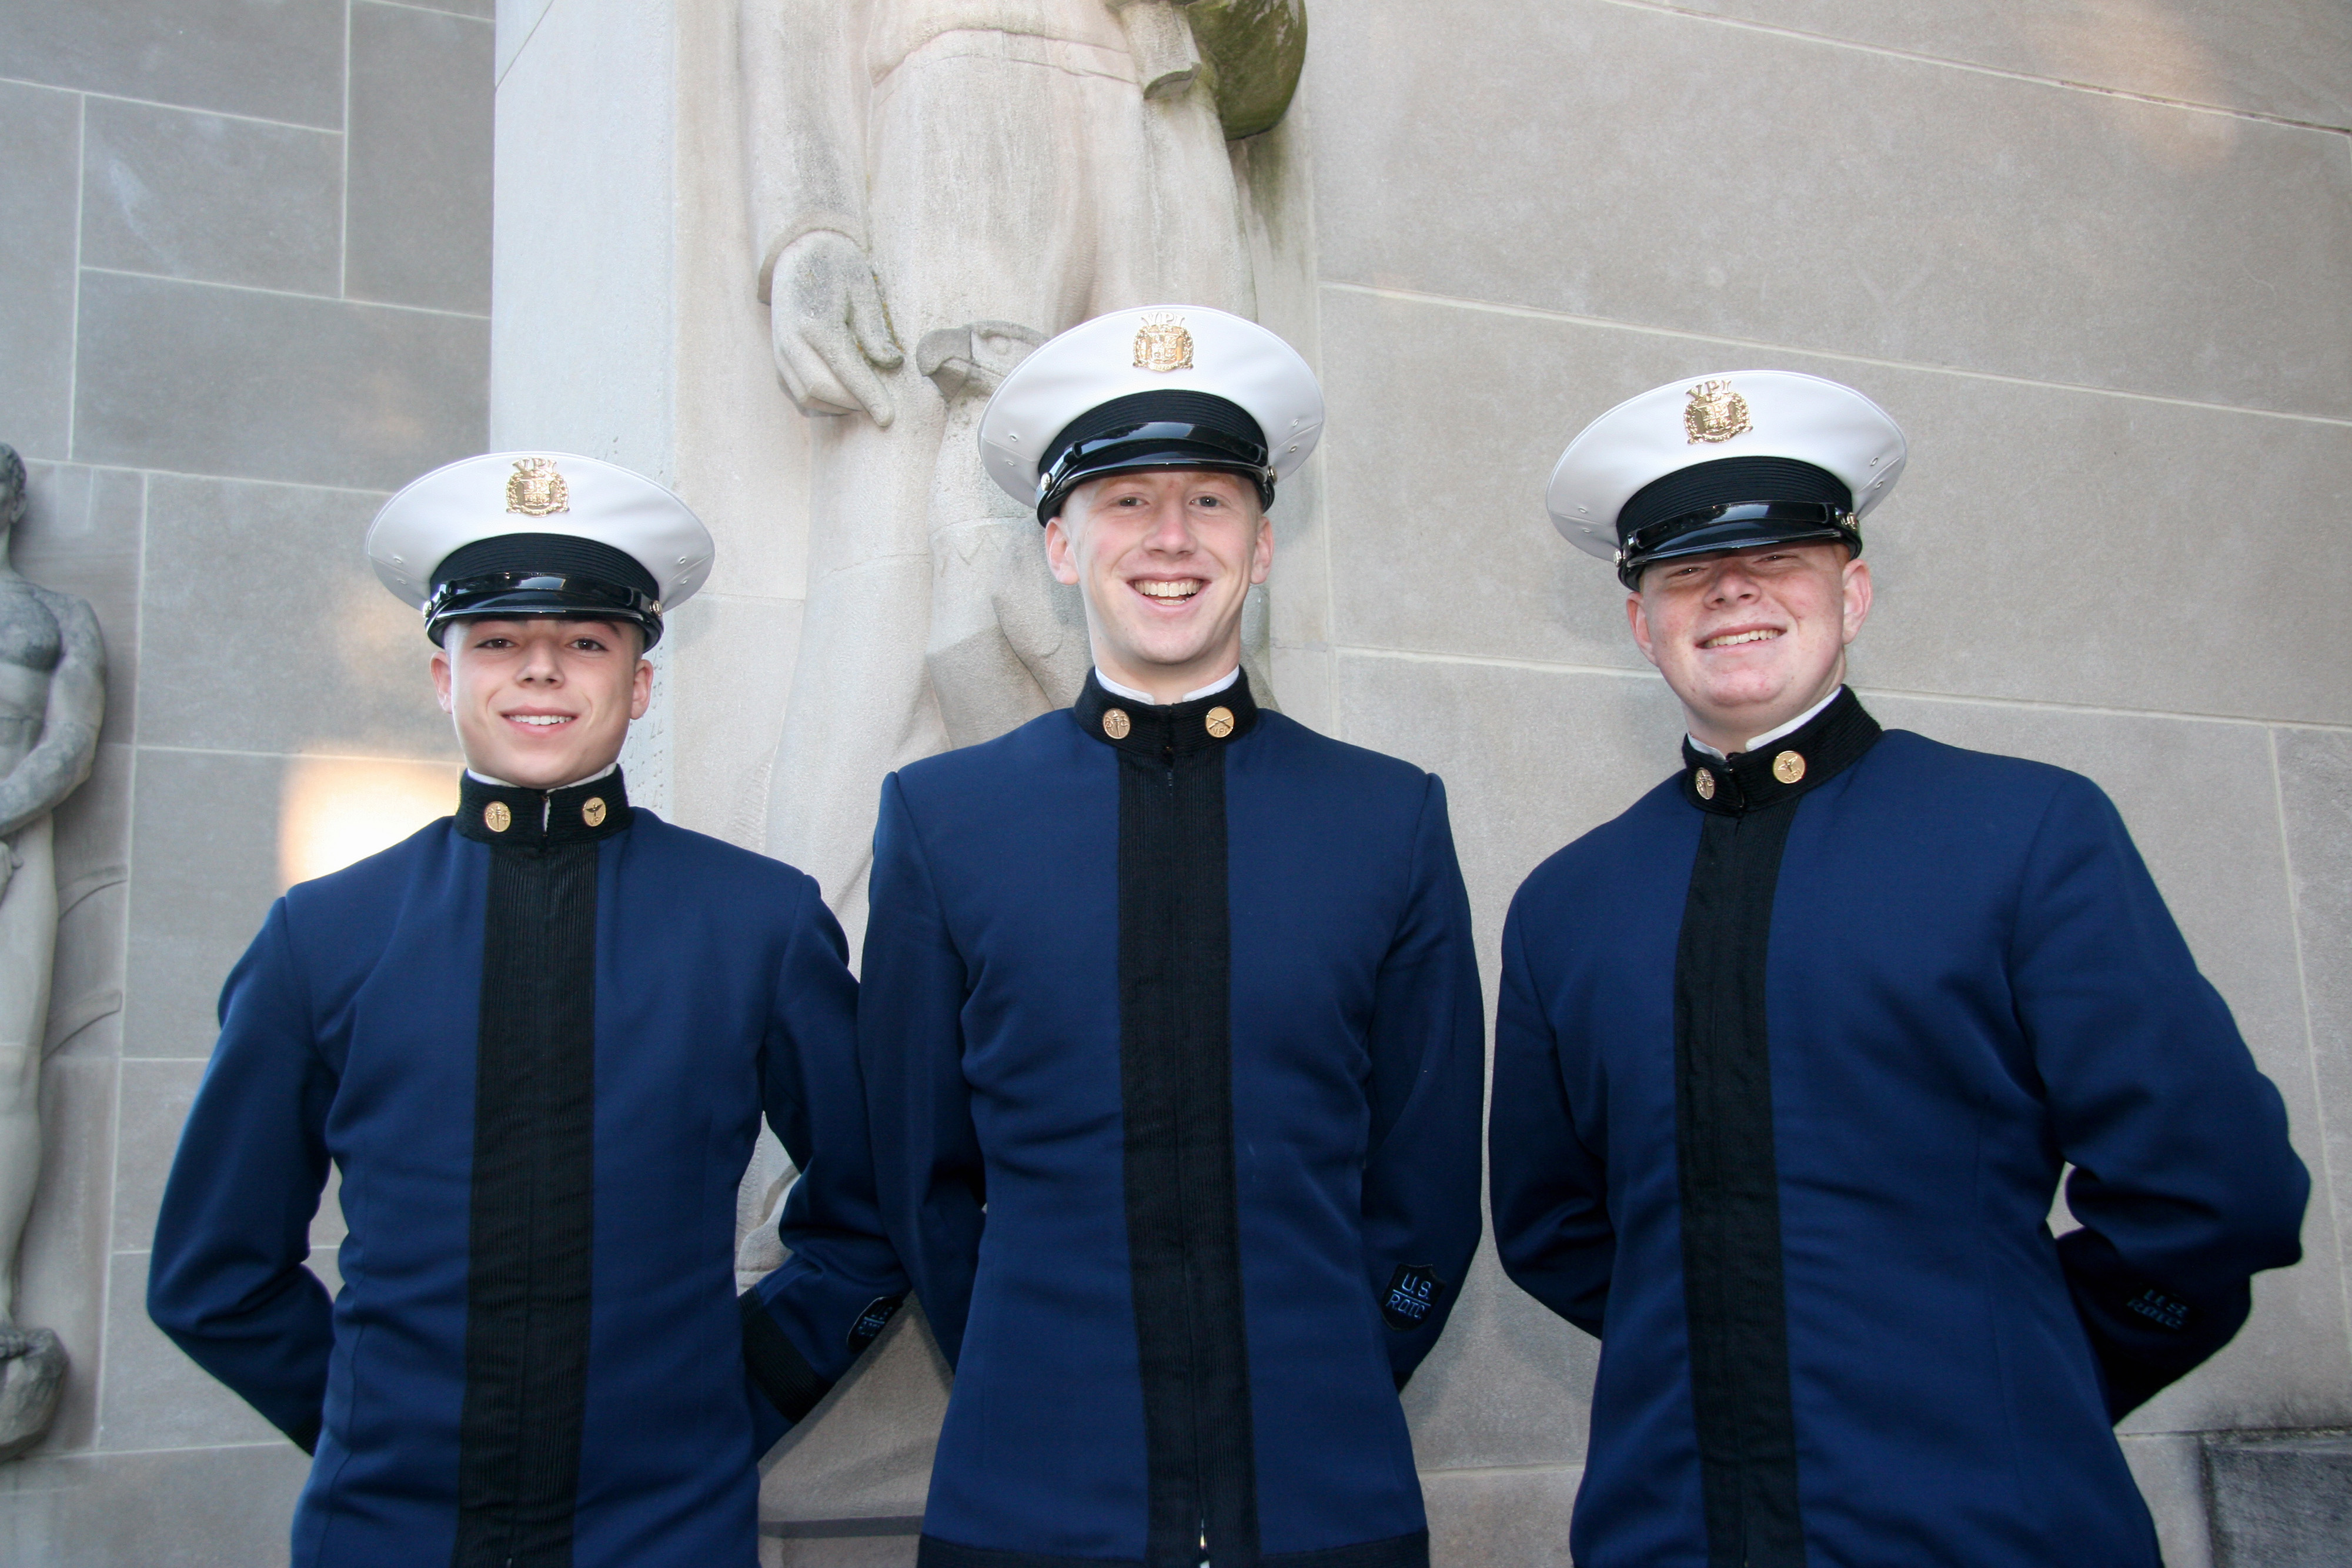 From left to right are Cadets Joshua Schnaitman, Richard Smullen, and William Frosell